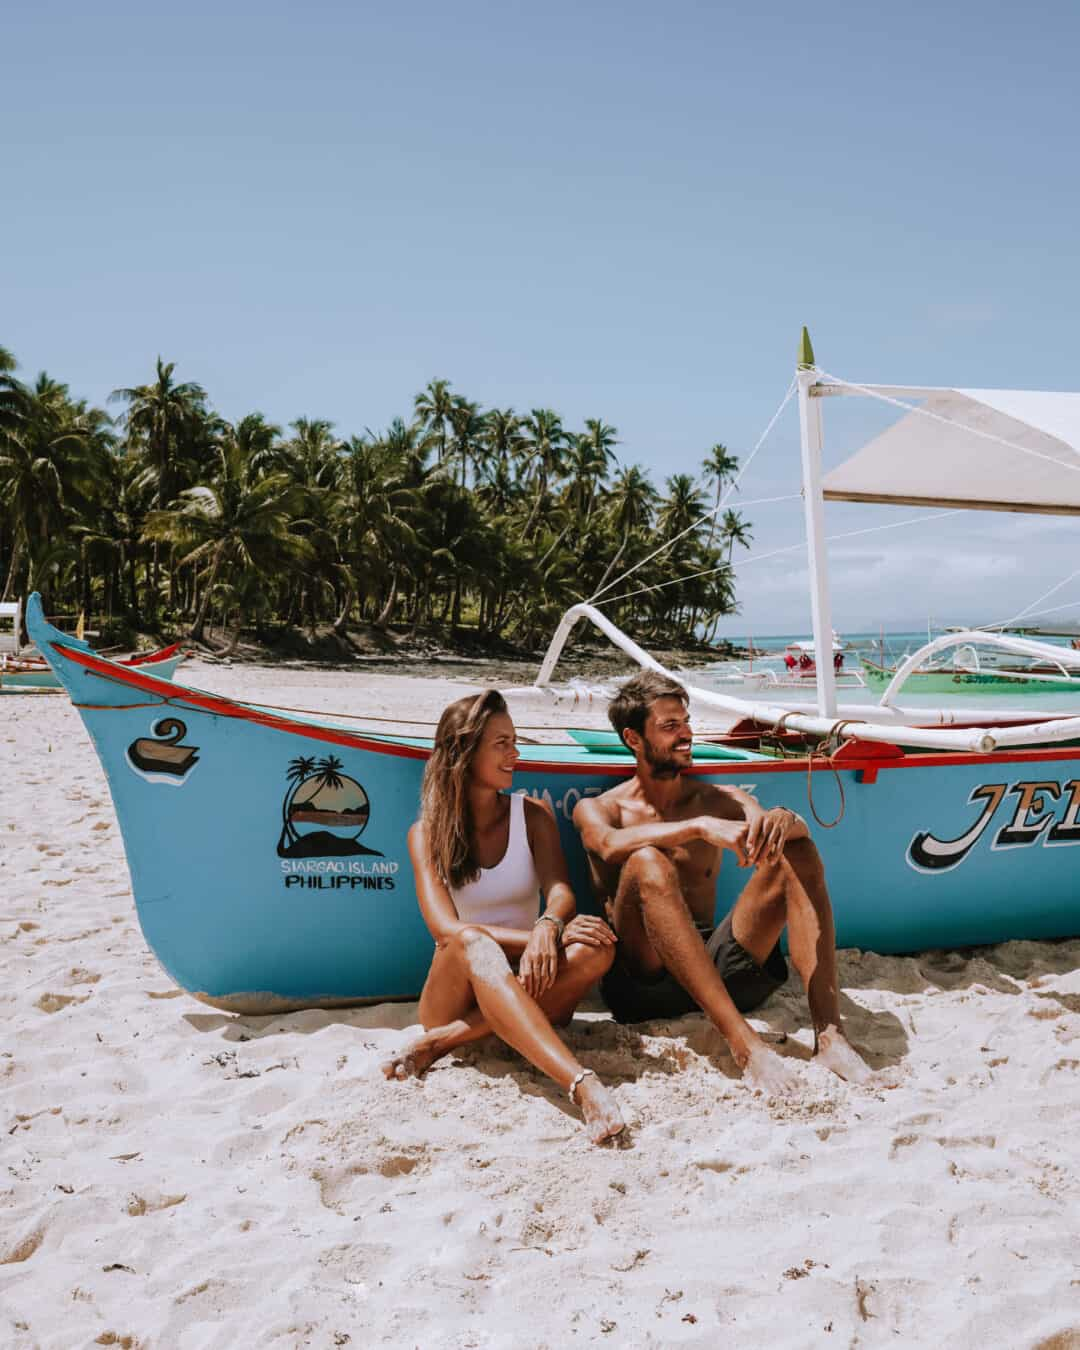 Siargao Daku Island Beach Boat Couple Sitting